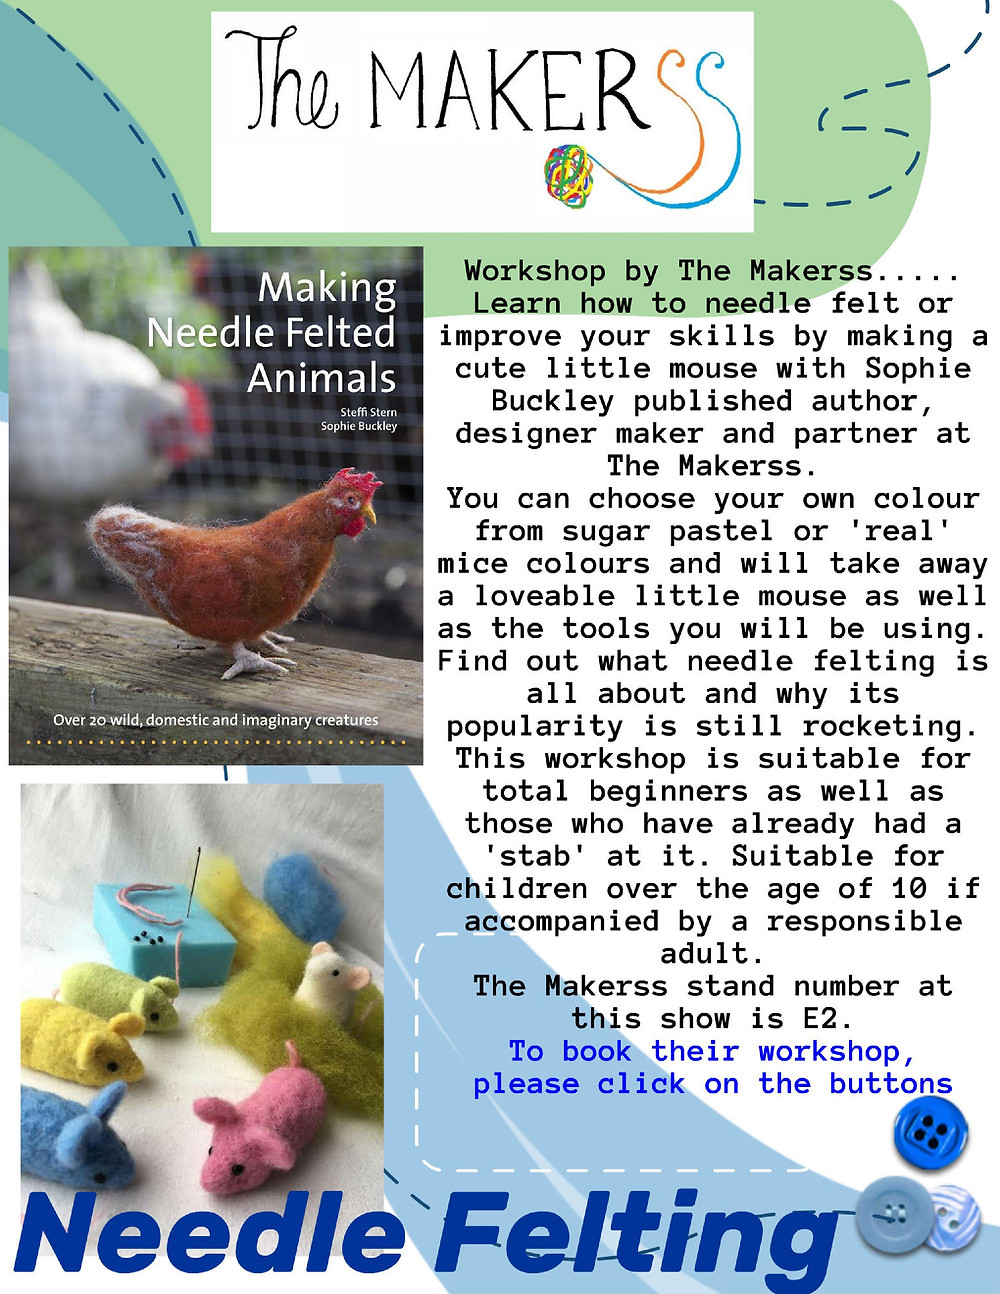 The Makerss Needle Felting Workshop at Create it Telford